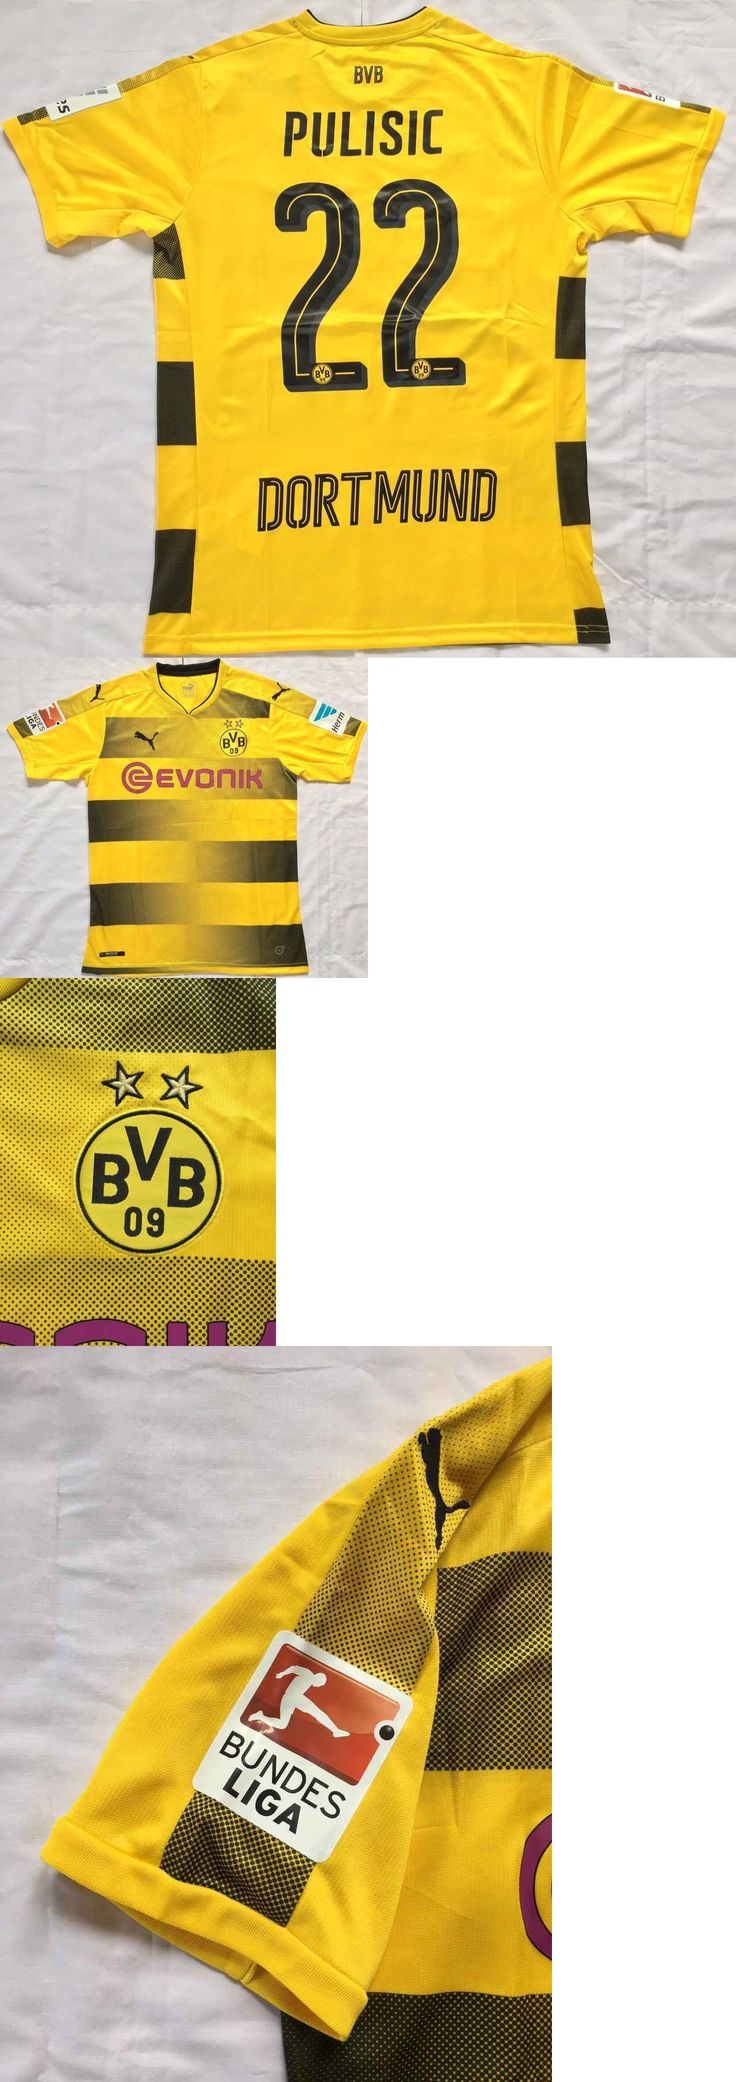 Soccer-International Clubs 2887: Borussia Dortmund Fc 17 18 Season Christian Pulisic Mens Stadium Jersey S To 2Xl -> BUY IT NOW ONLY: $49.95 on eBay!